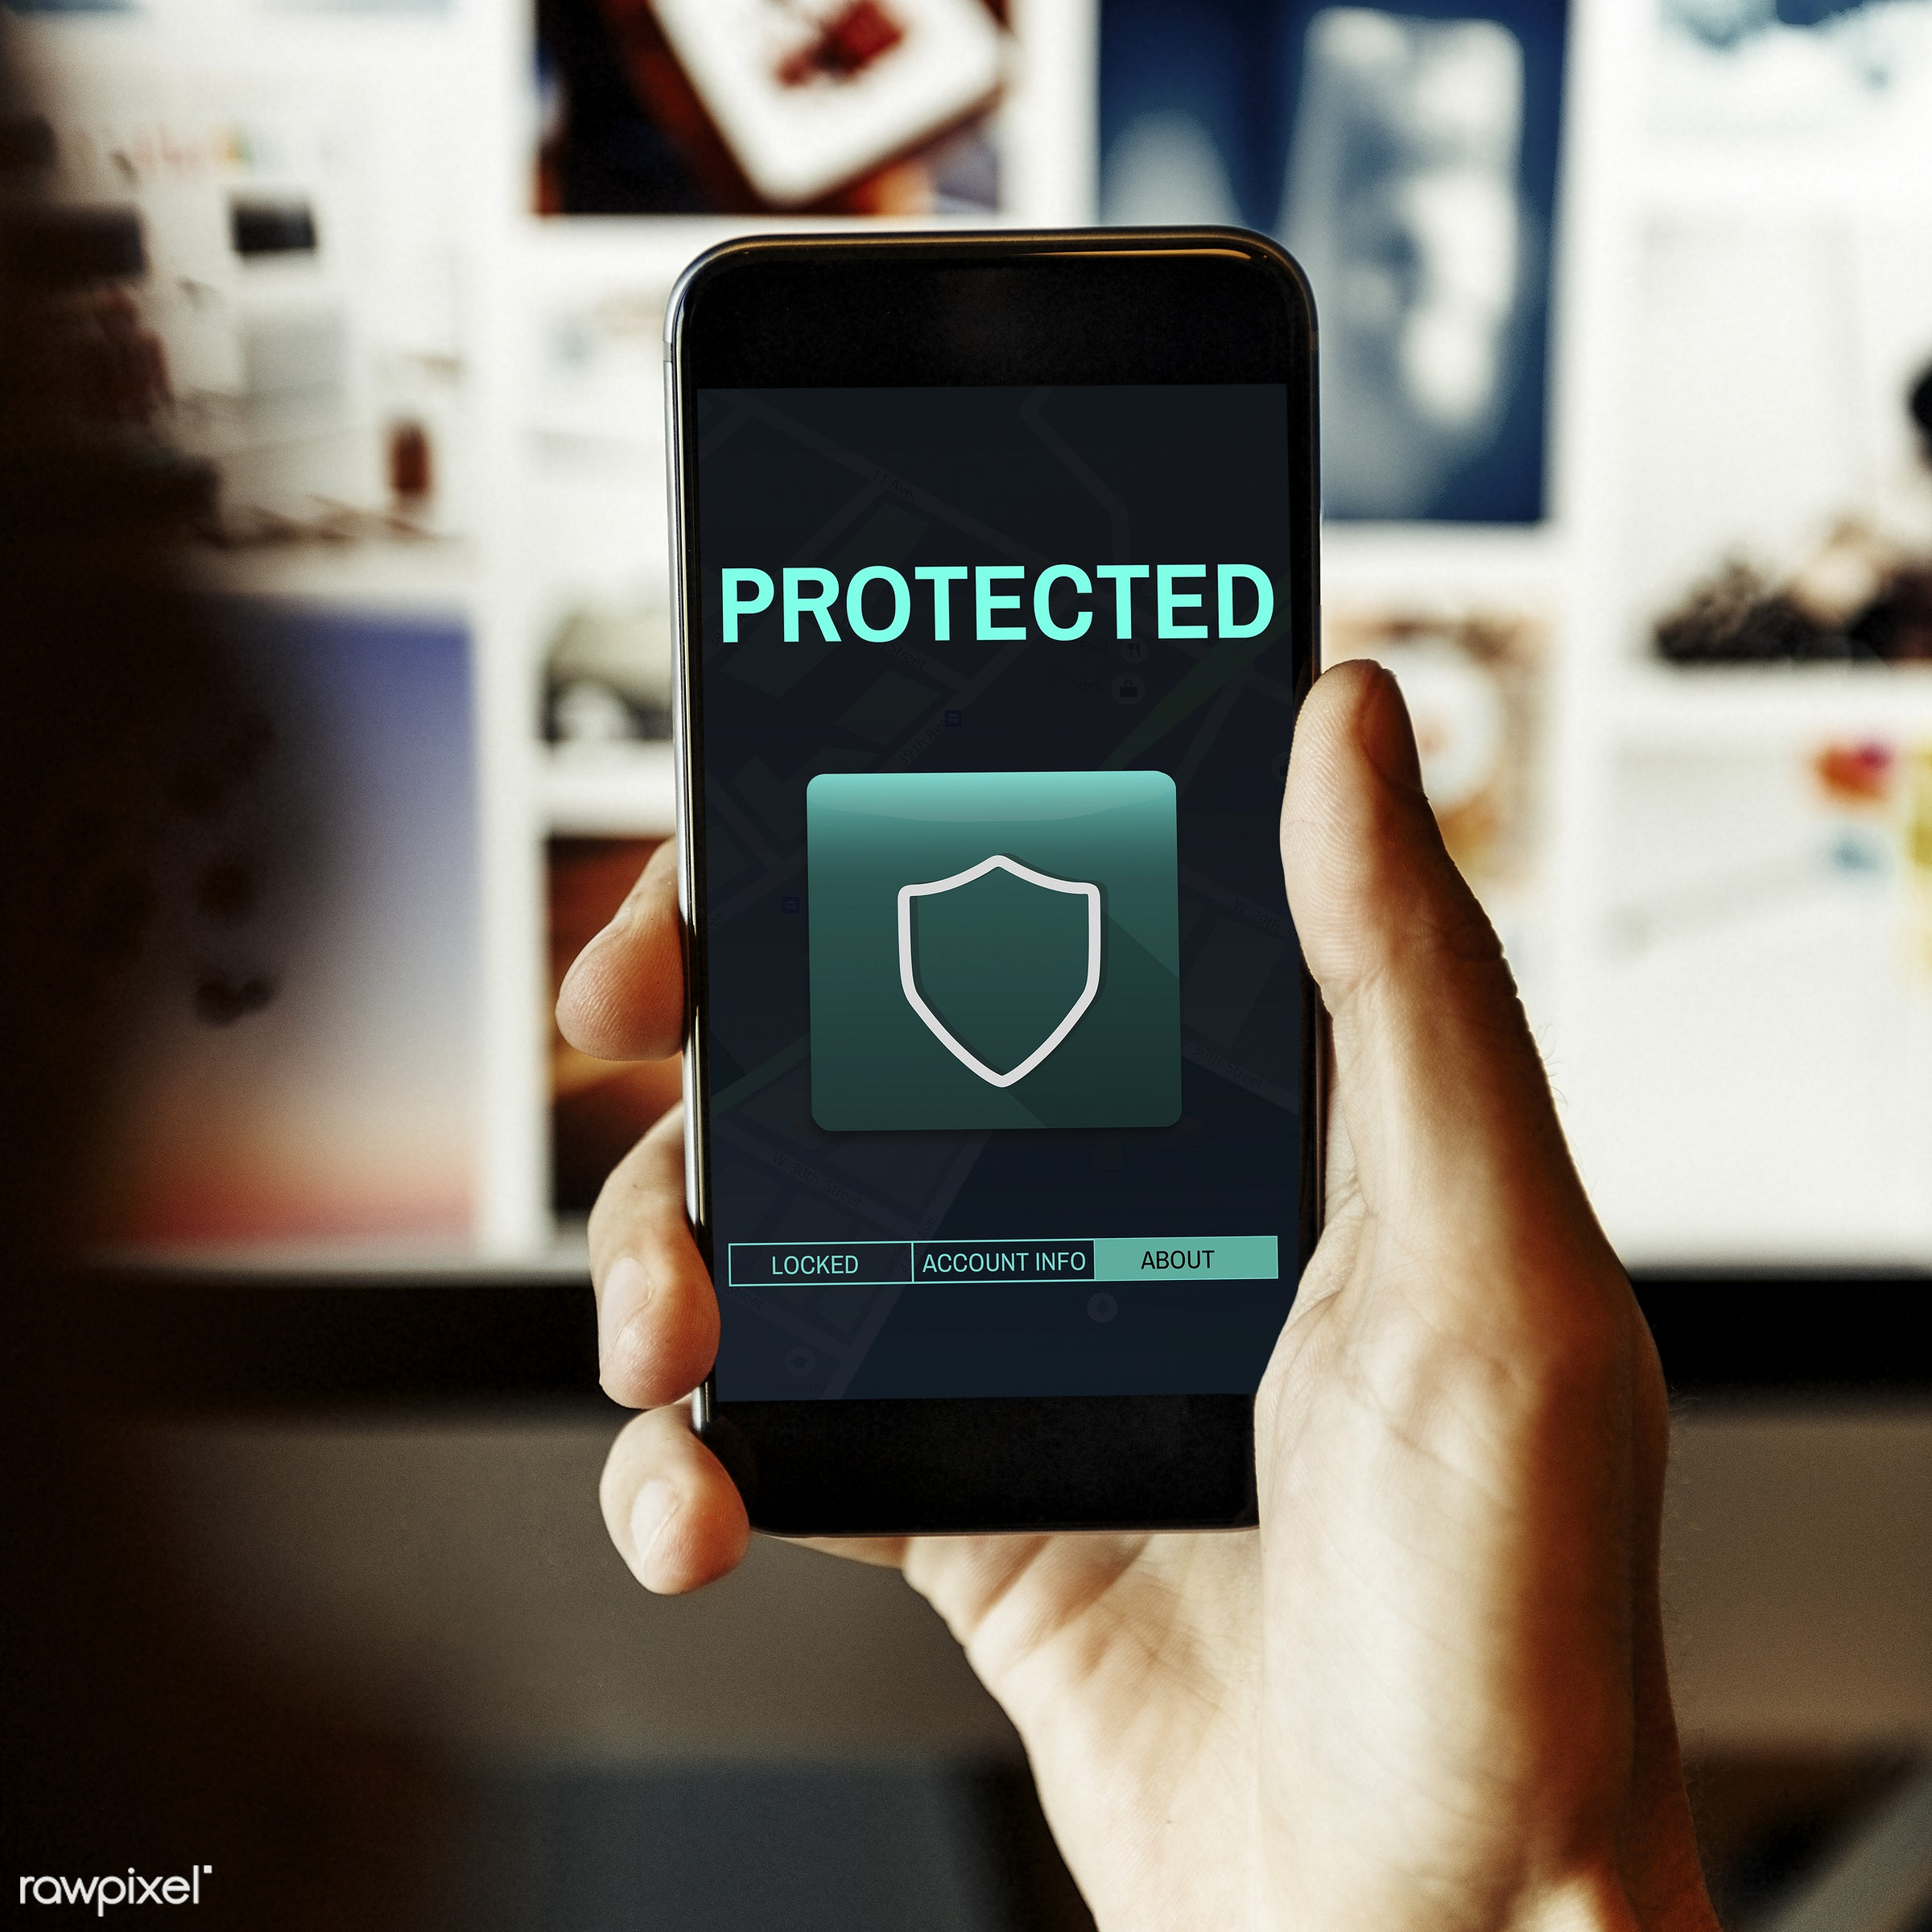 Mobile security - mobile, phone, privacy, private, technology, banking, confidentiality, account info, administration, break...